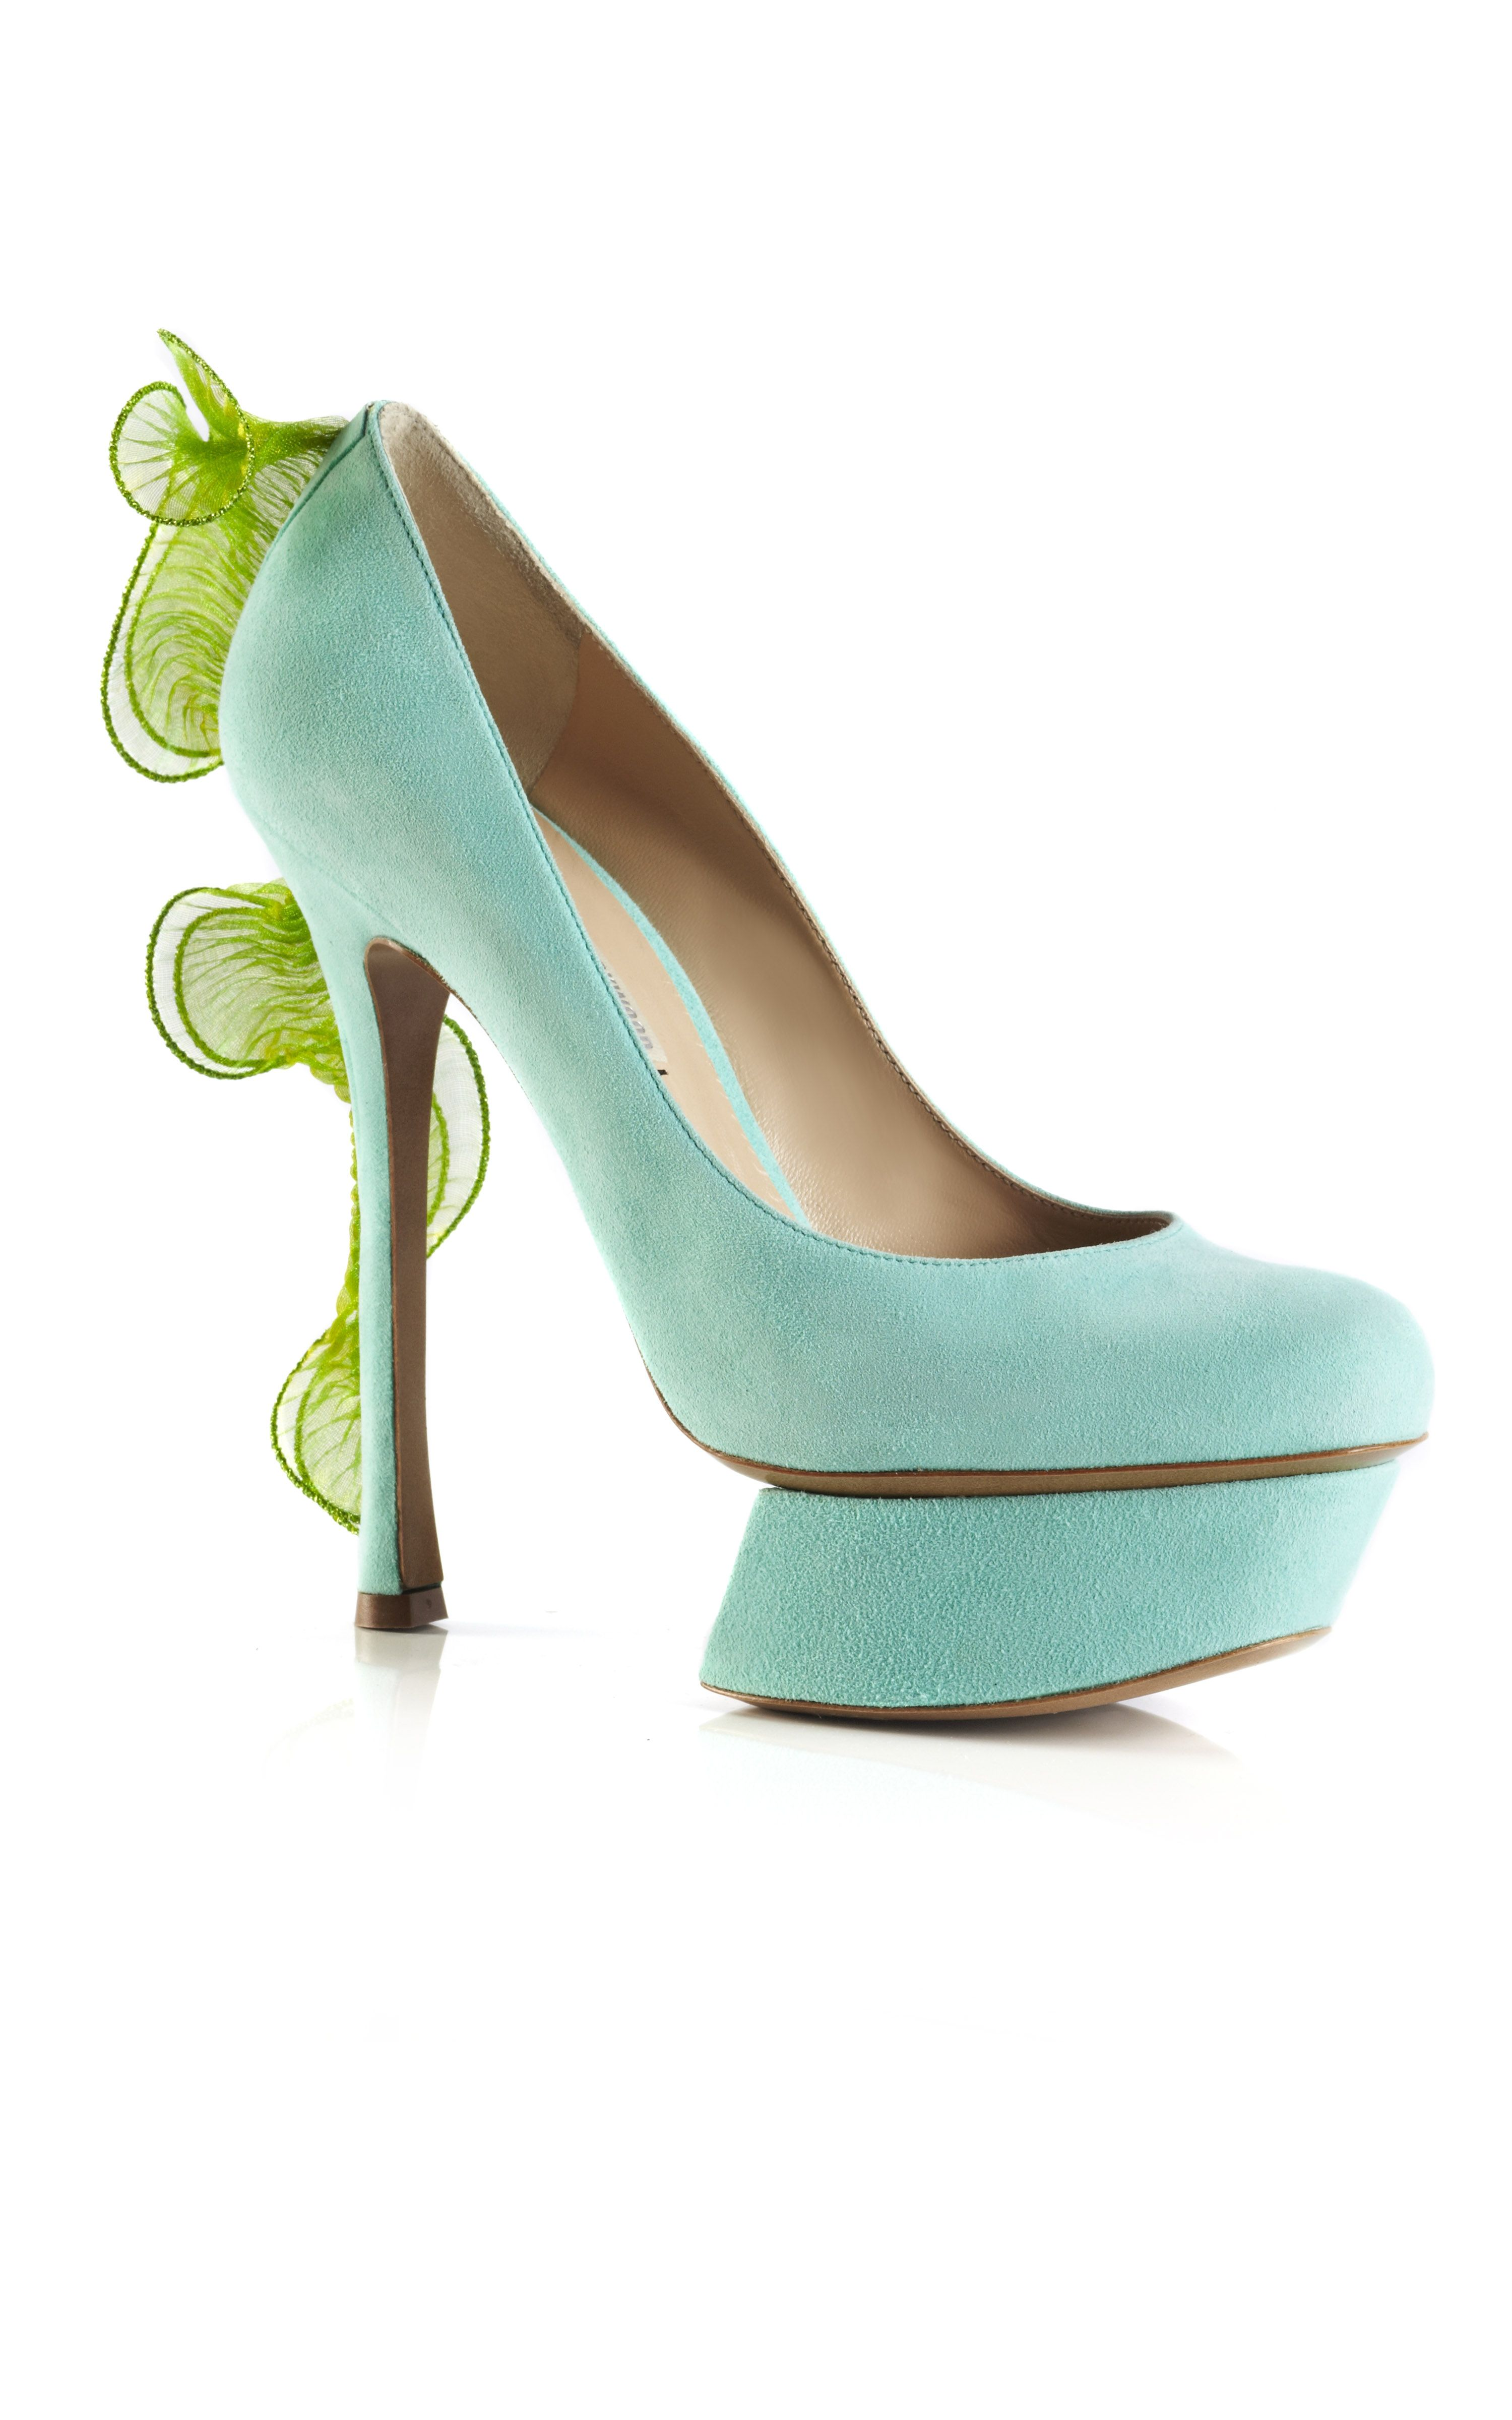 fabbd498d43 Shop Nicholas Kirkwood Aqua and Green Frill Platform Pump at Moda Operandi Suede  Platform Pumps,